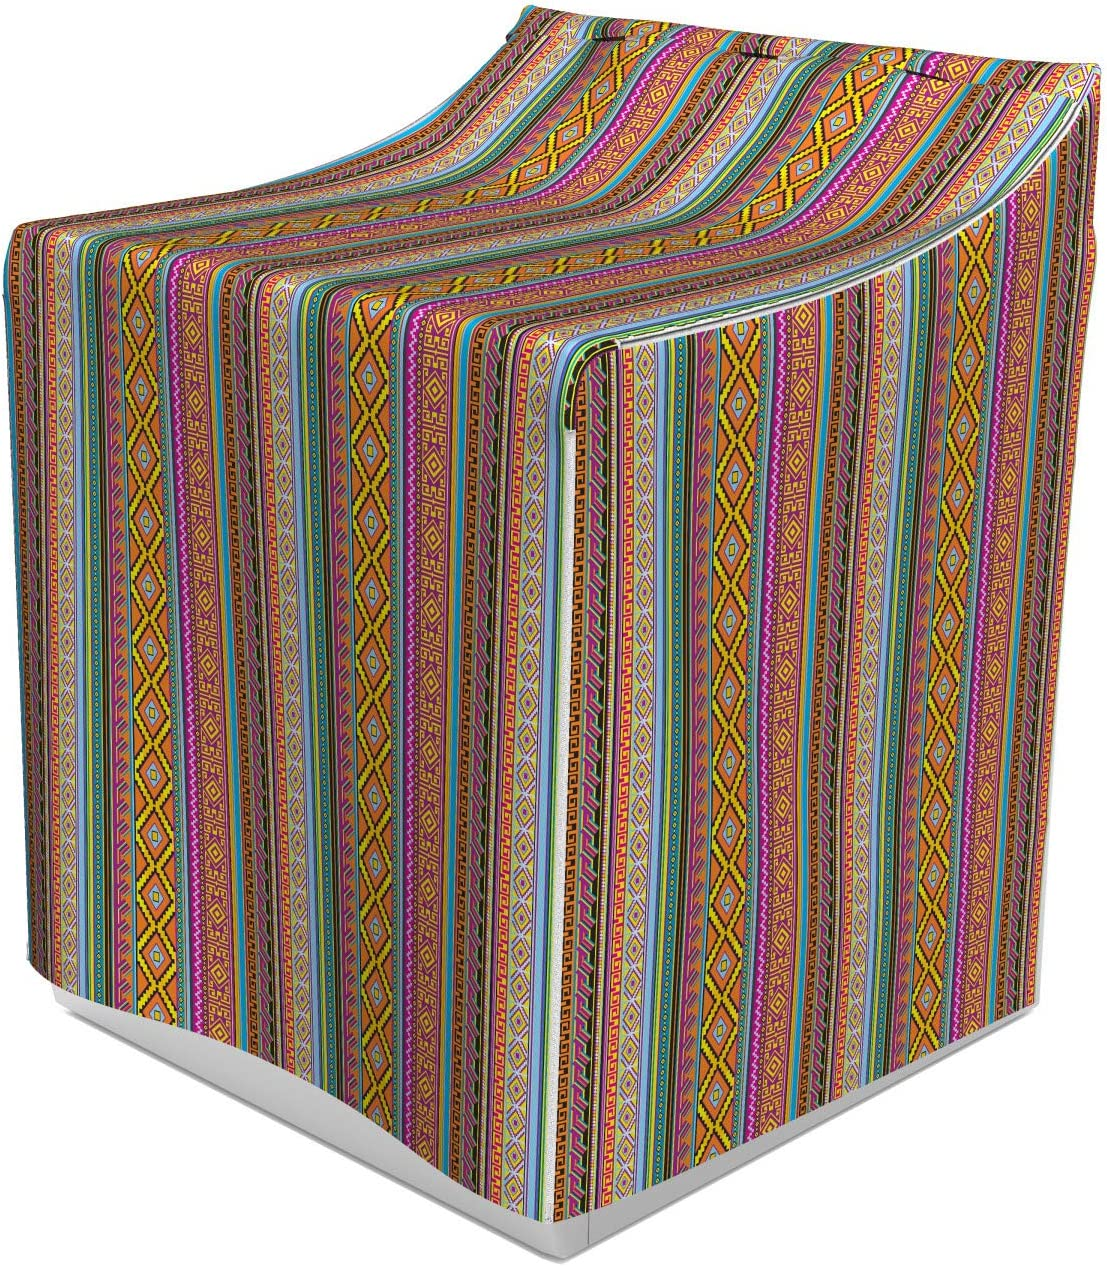 """Lunarable Ethnic Washer Cover, Folk Pattern with Effects and Geometric Forms Artwork, Suitable for Dryer and Washing Machine, 29"""" x 28"""" x 40"""", Orange Pink"""